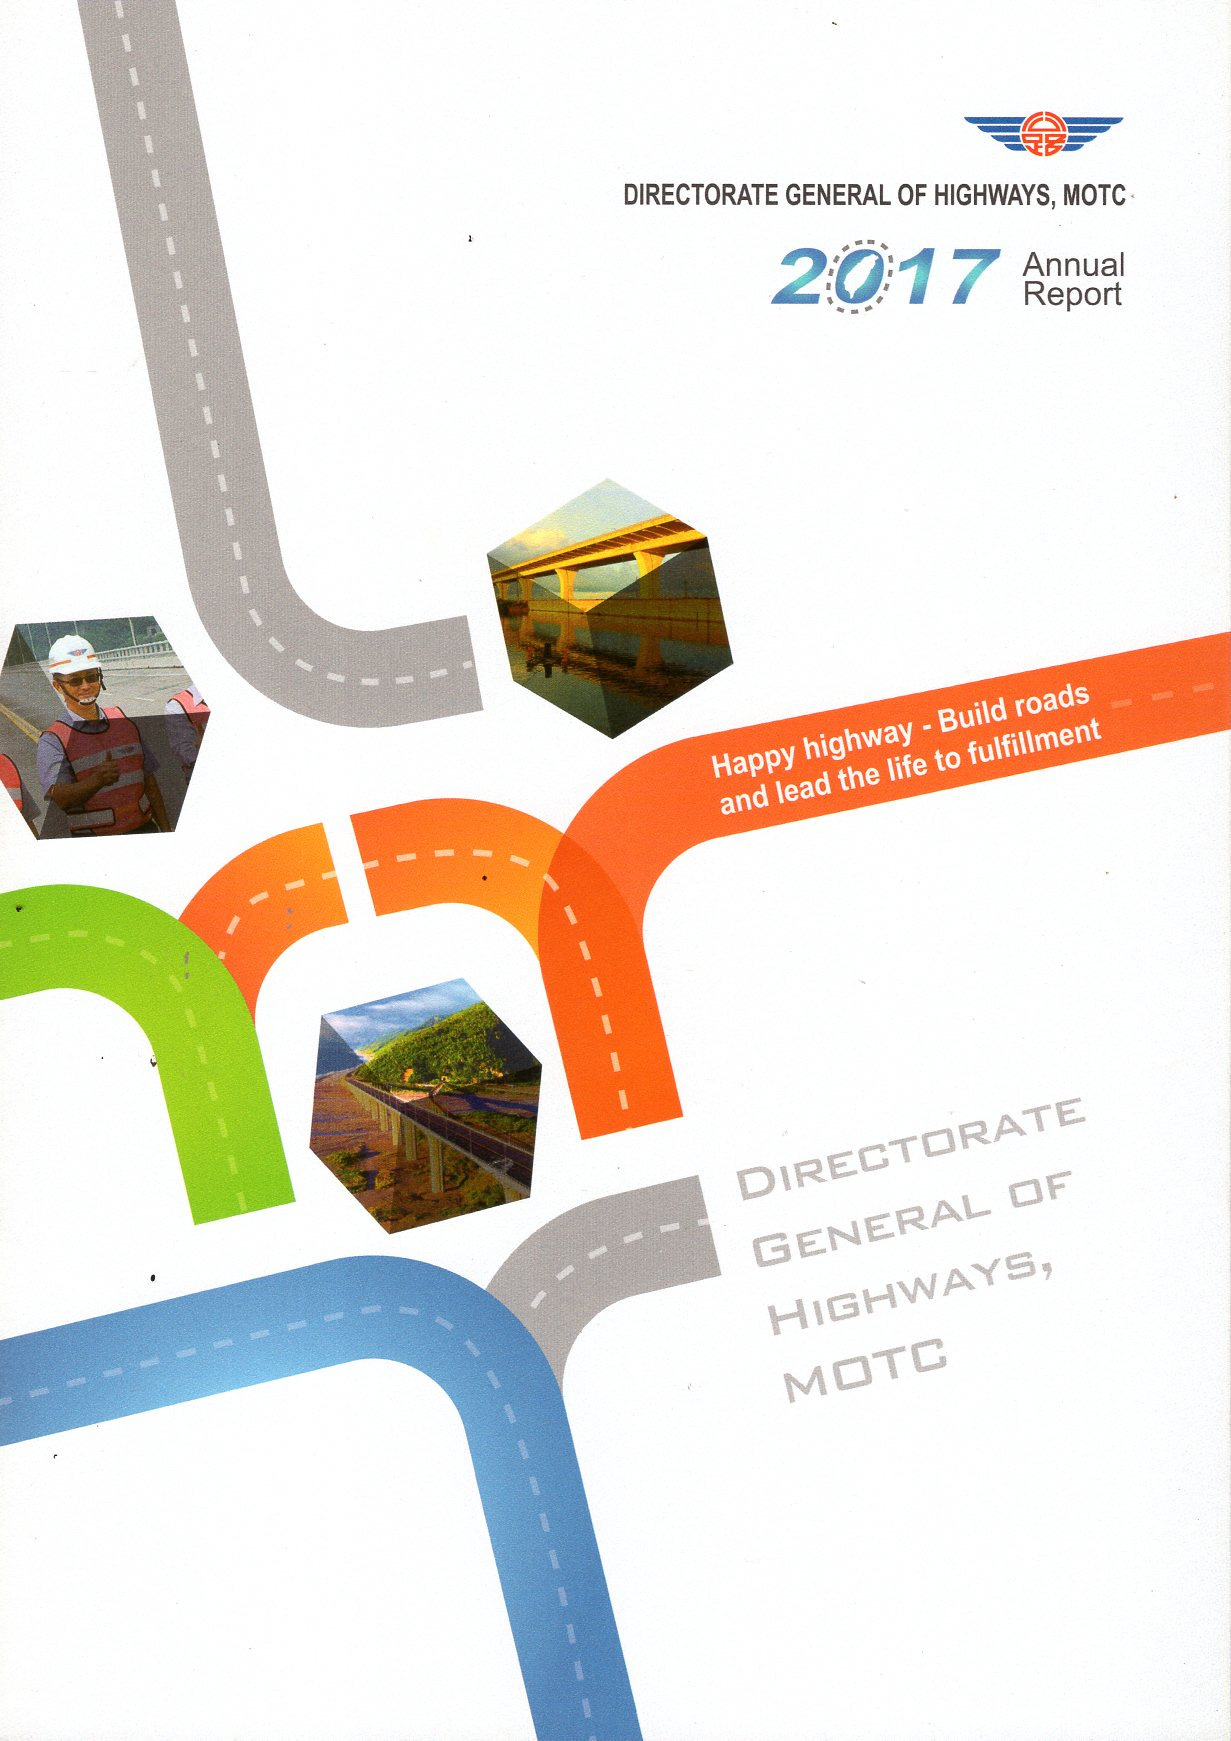 2017 Annual Report of Directorate General of Highways, MOTC(附光碟)